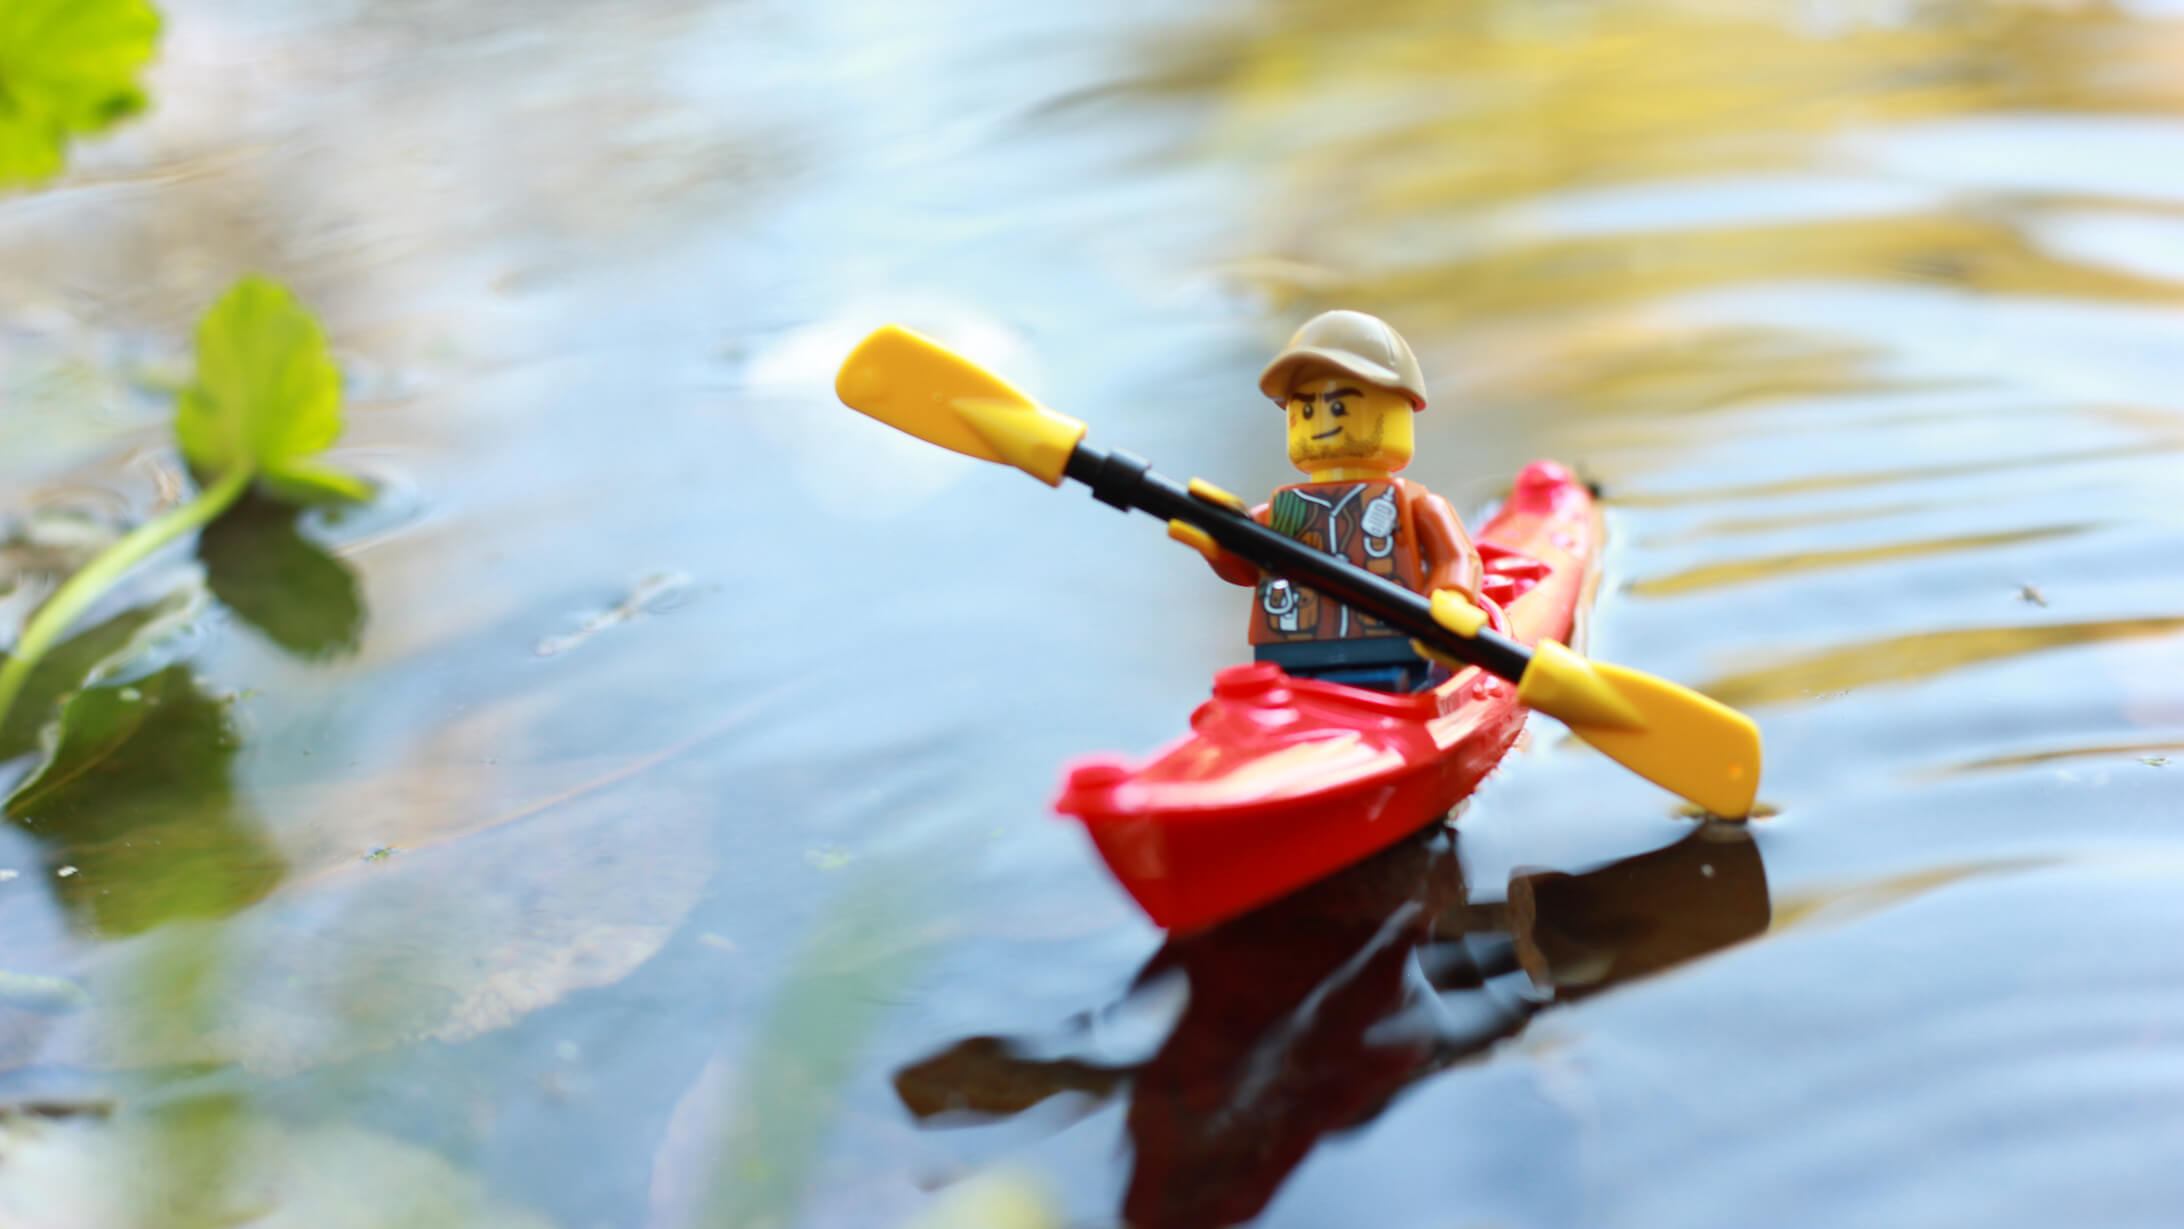 lego city jungle kayak